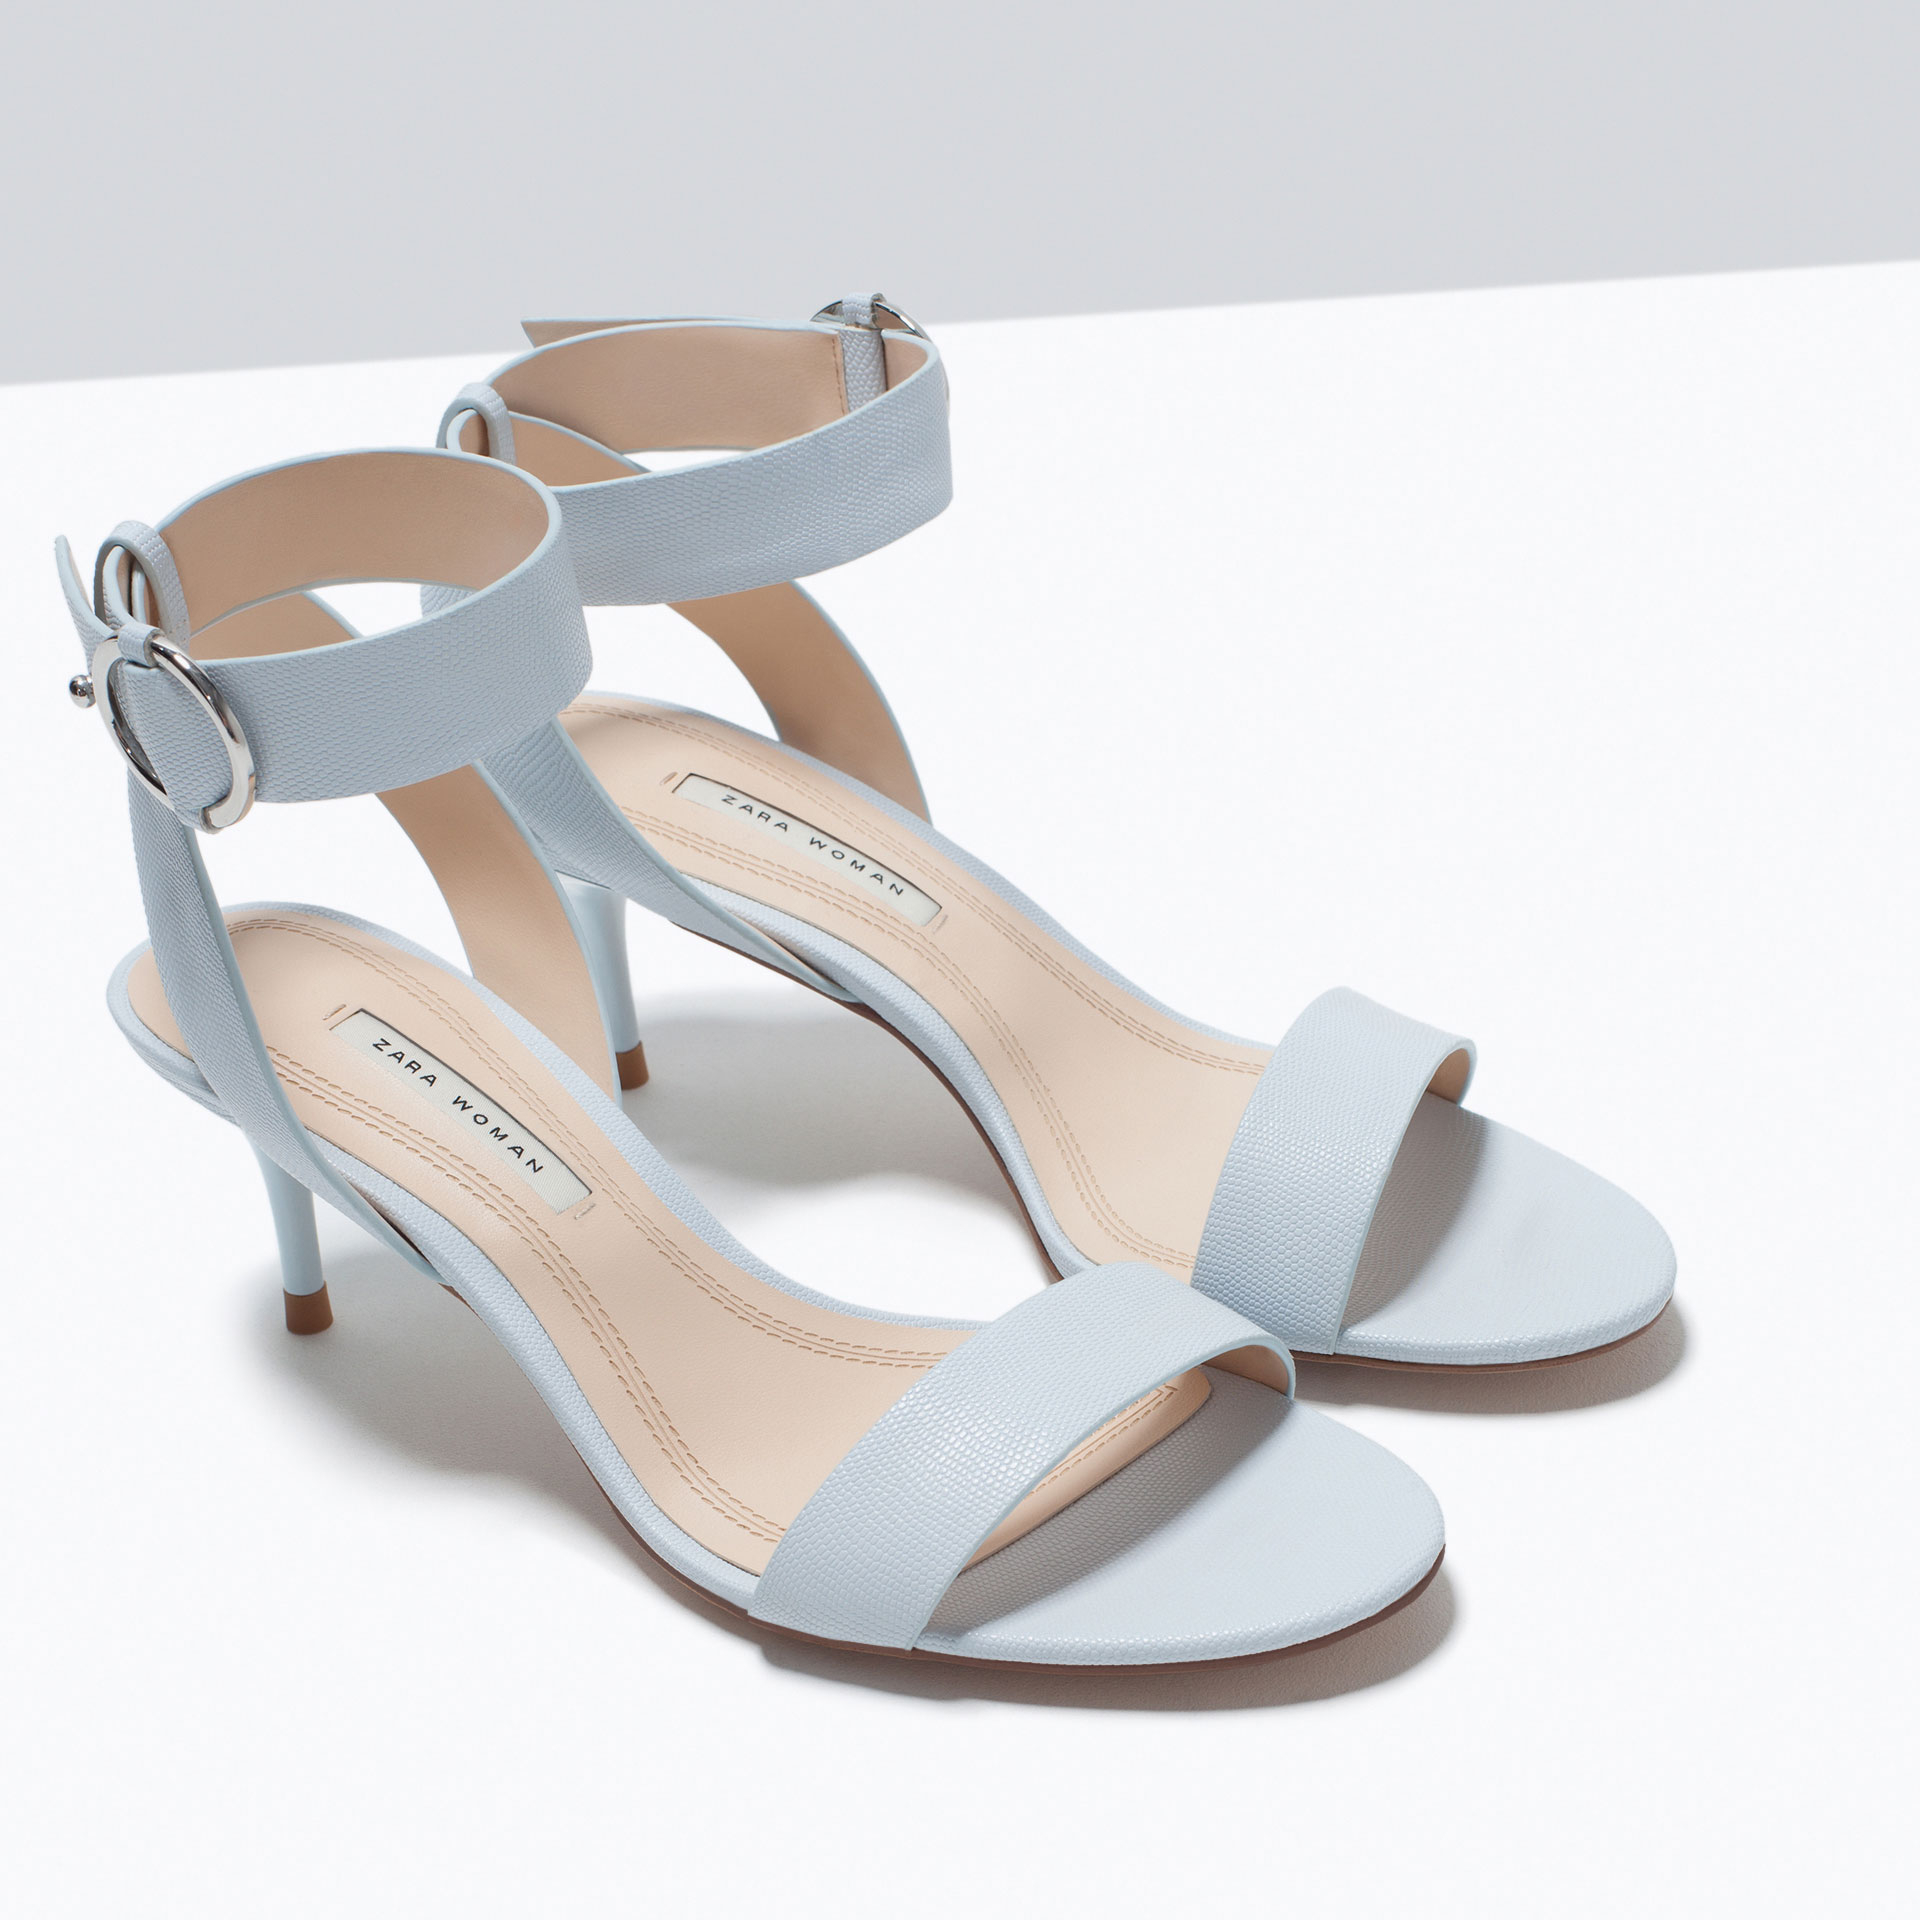 Zara Mid-Heel Sandals With Ankle Strap Mid-Heel Sandals With Ankle ...